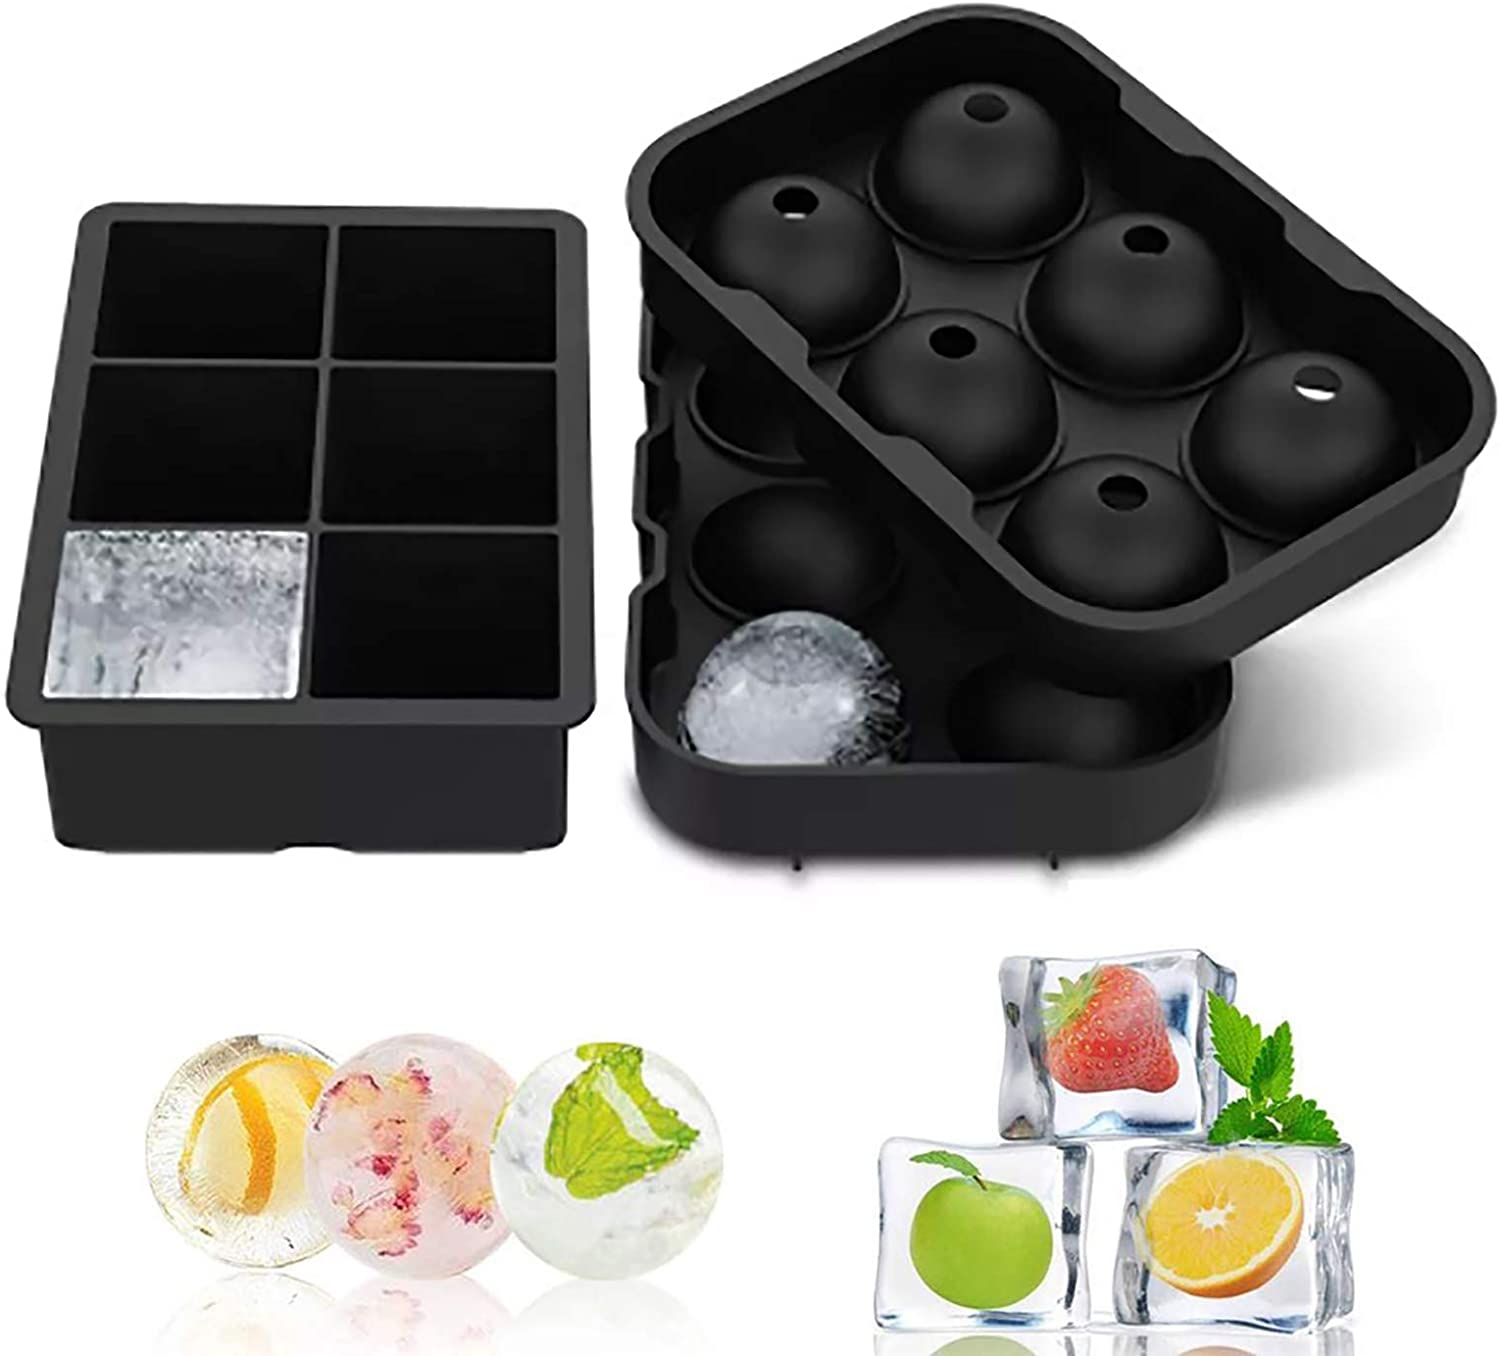 2 sets of ice cube trays with silicone Ice Cube Tray Silicone Cover 2 Set Reusable and BPA-free For whiskey Large 6 compartment square ice cube mold and 6 compartment spherical ice maker